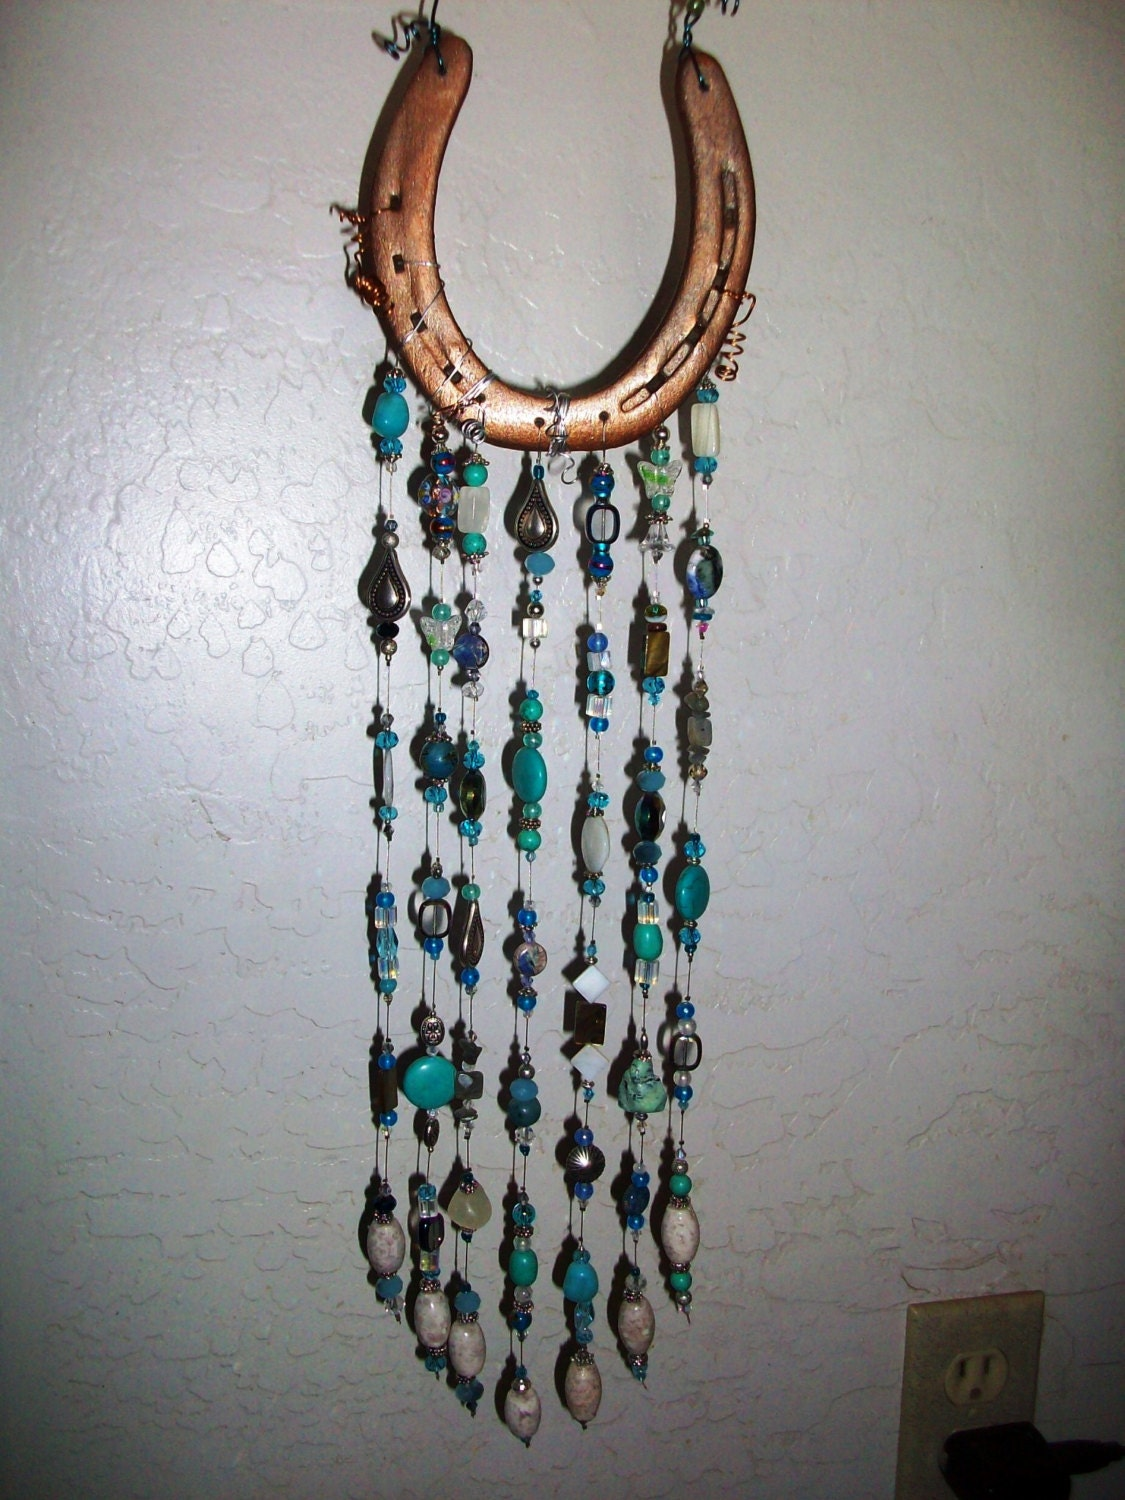 Sale 20 off horseshoe sun catcher crystals and by for Horseshoe crafts for sale